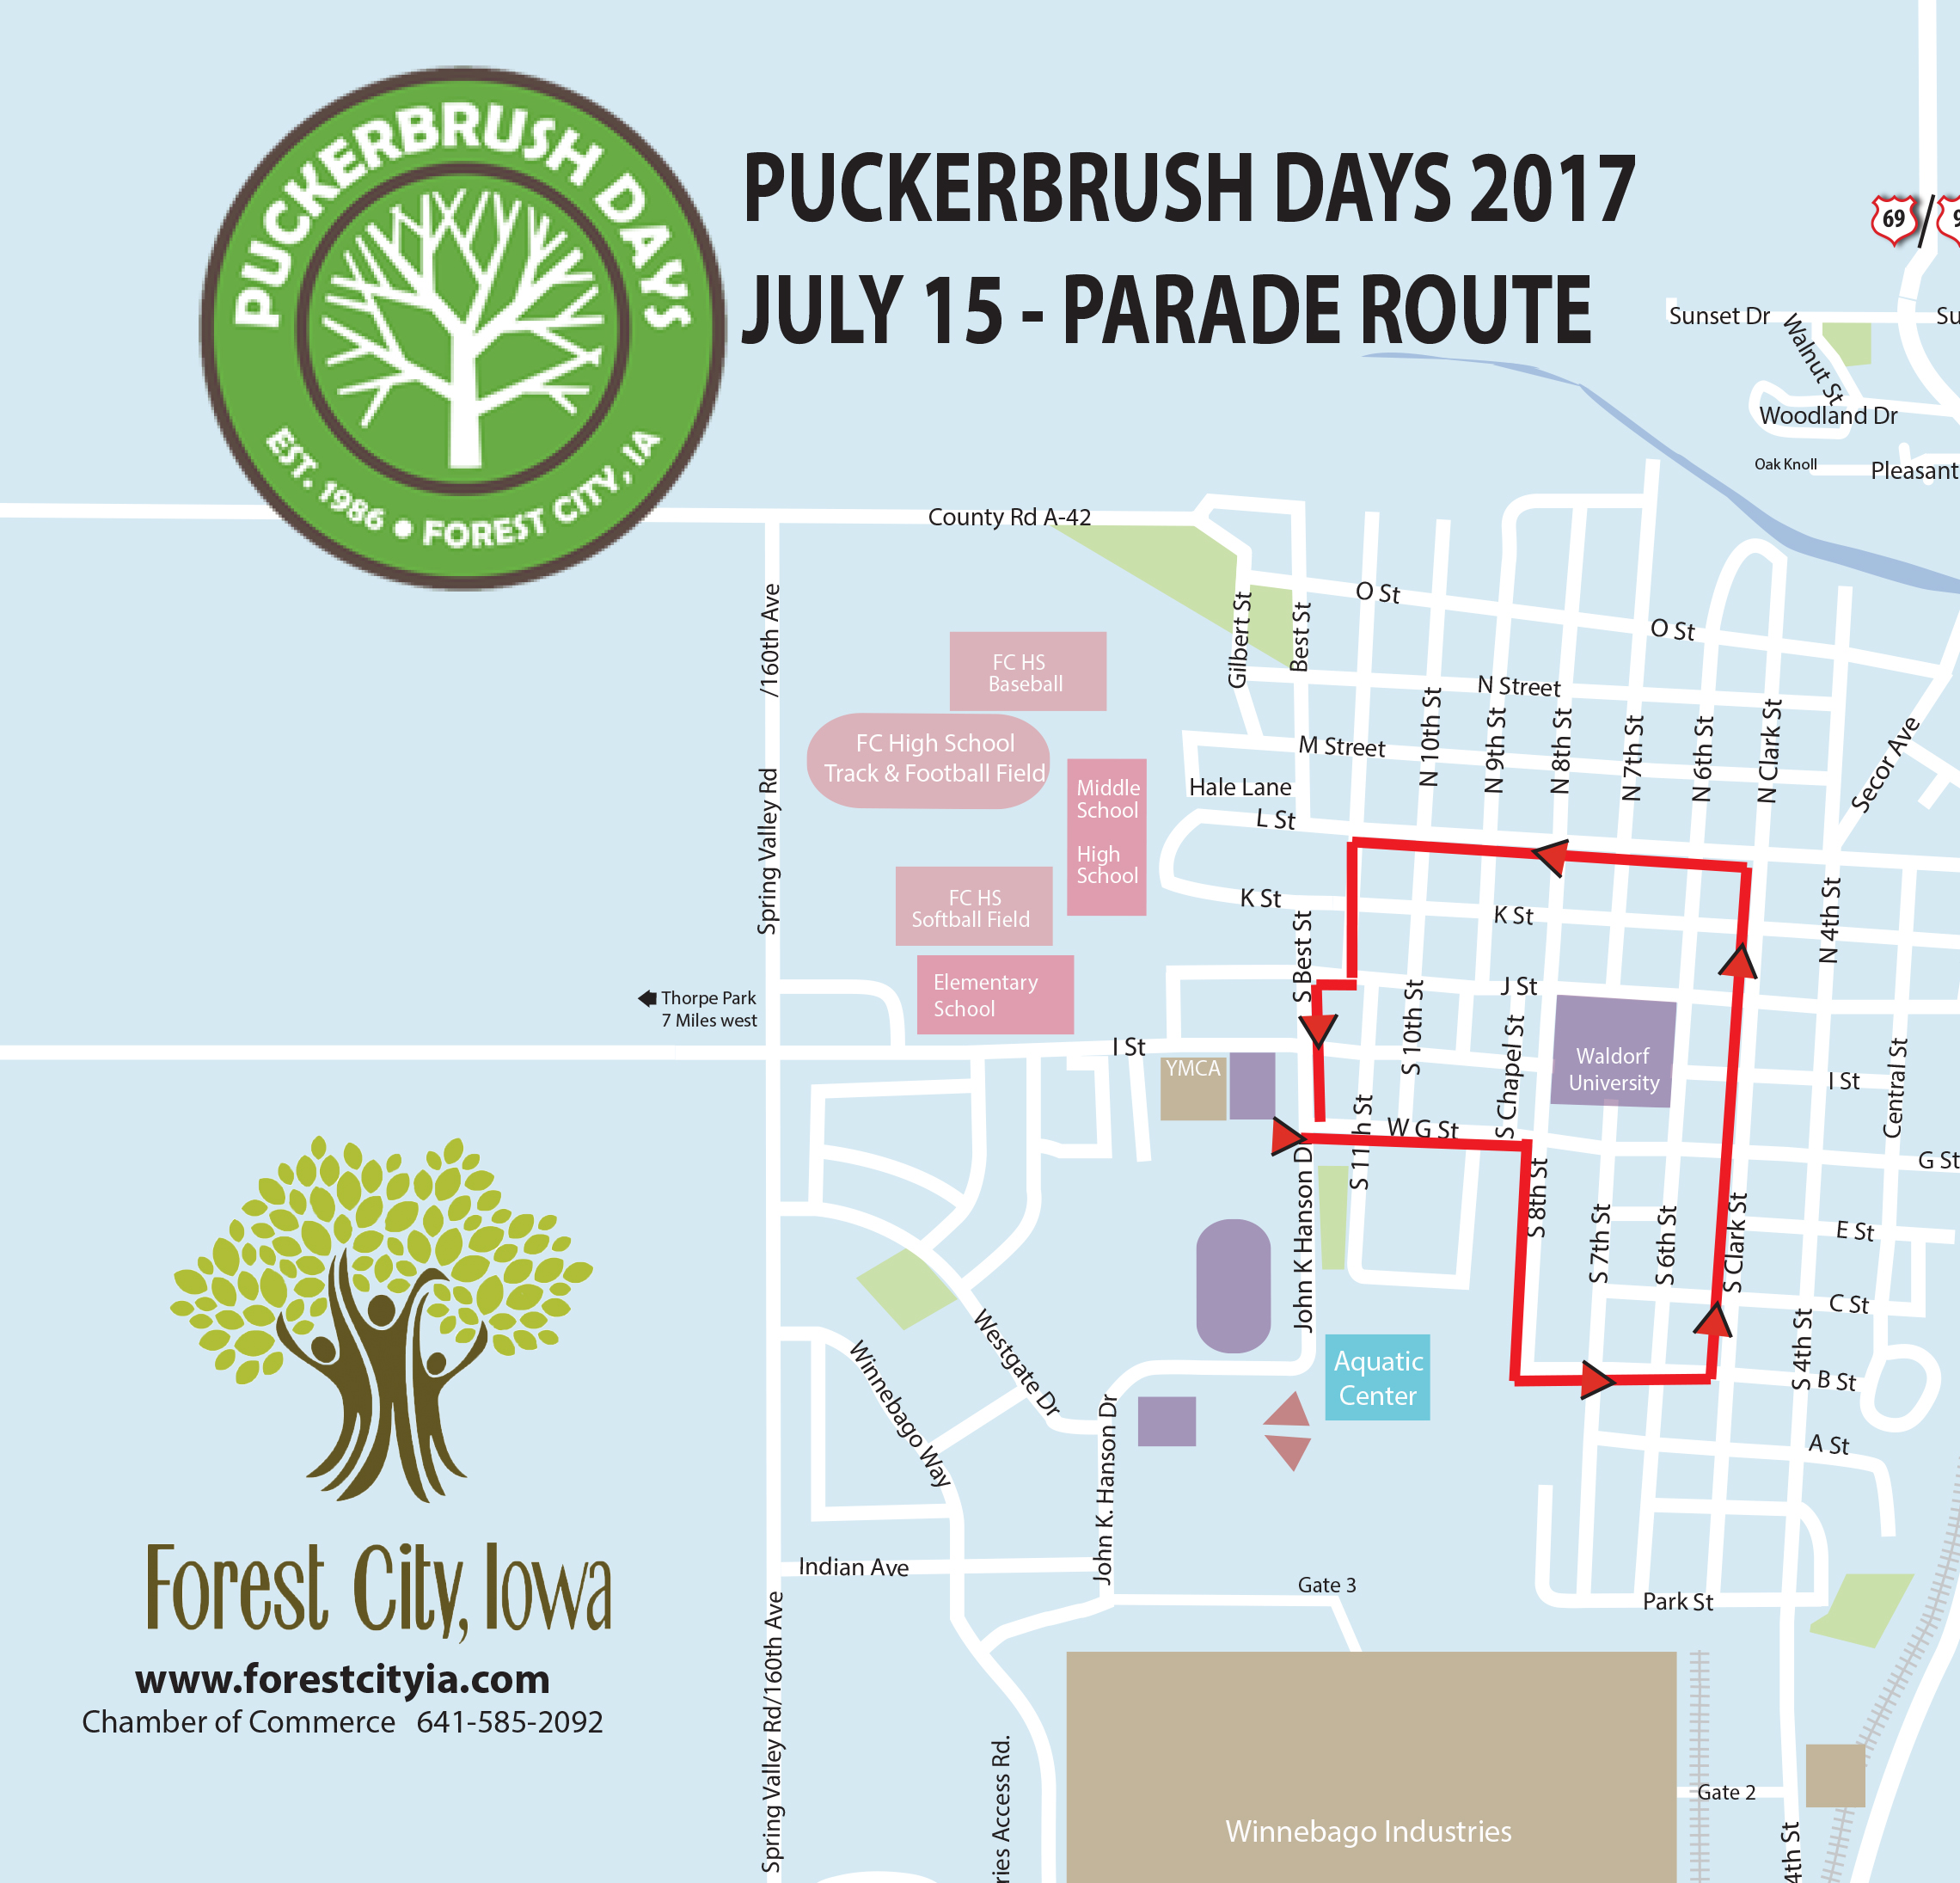 Puckerbrush Days 2017 Forest City Iowa Fire Truck Schematic Other Activities Include Authors Meet And Greet Rides A Craft Show